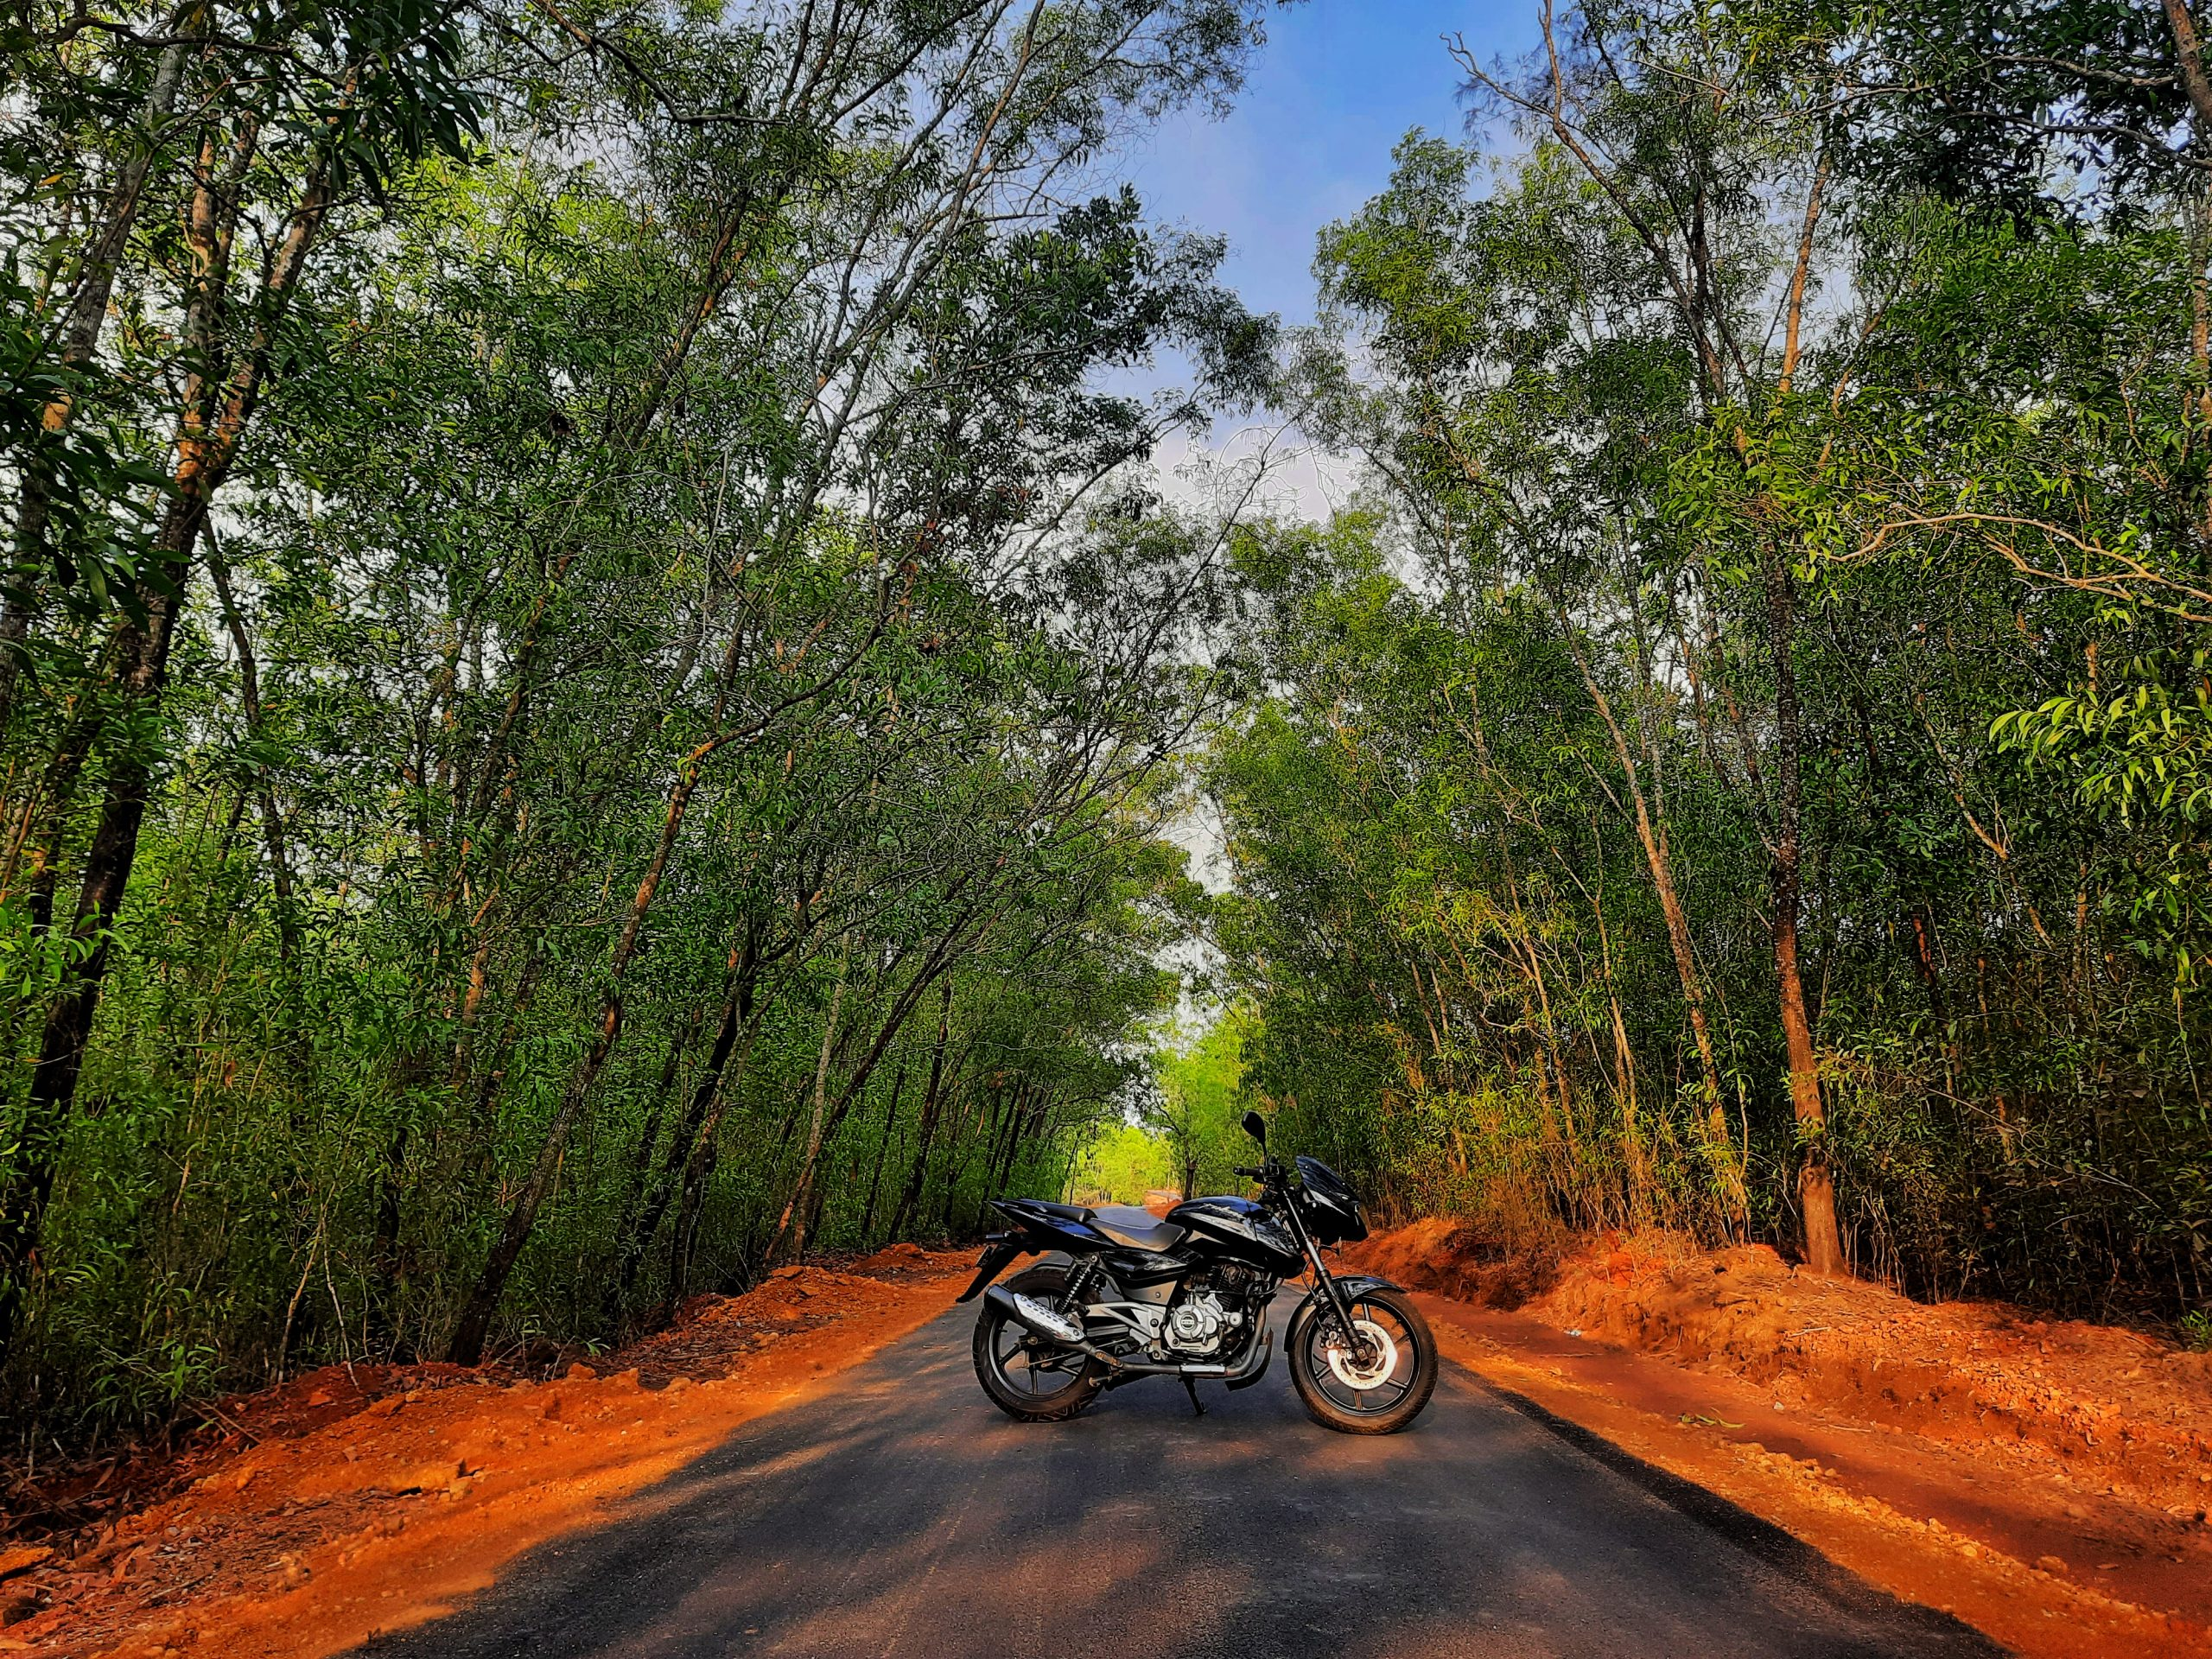 A bike in a jungle parked across a road